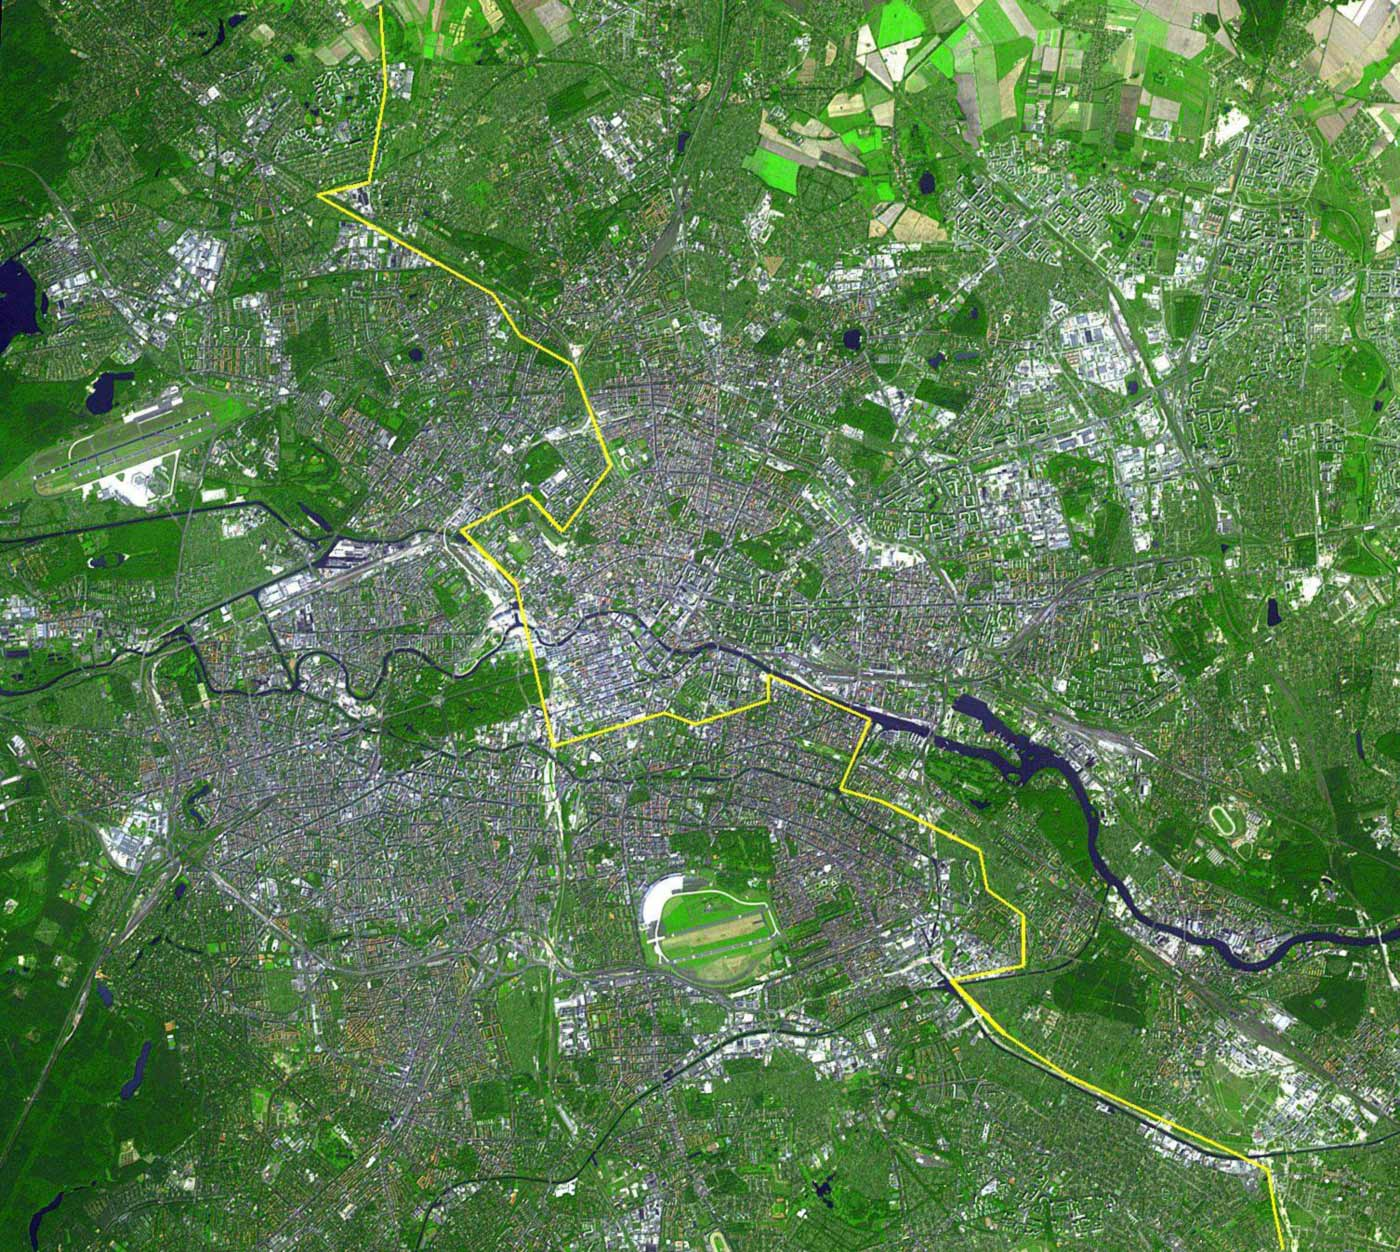 Berlin Satellite Image With Berlin Wall